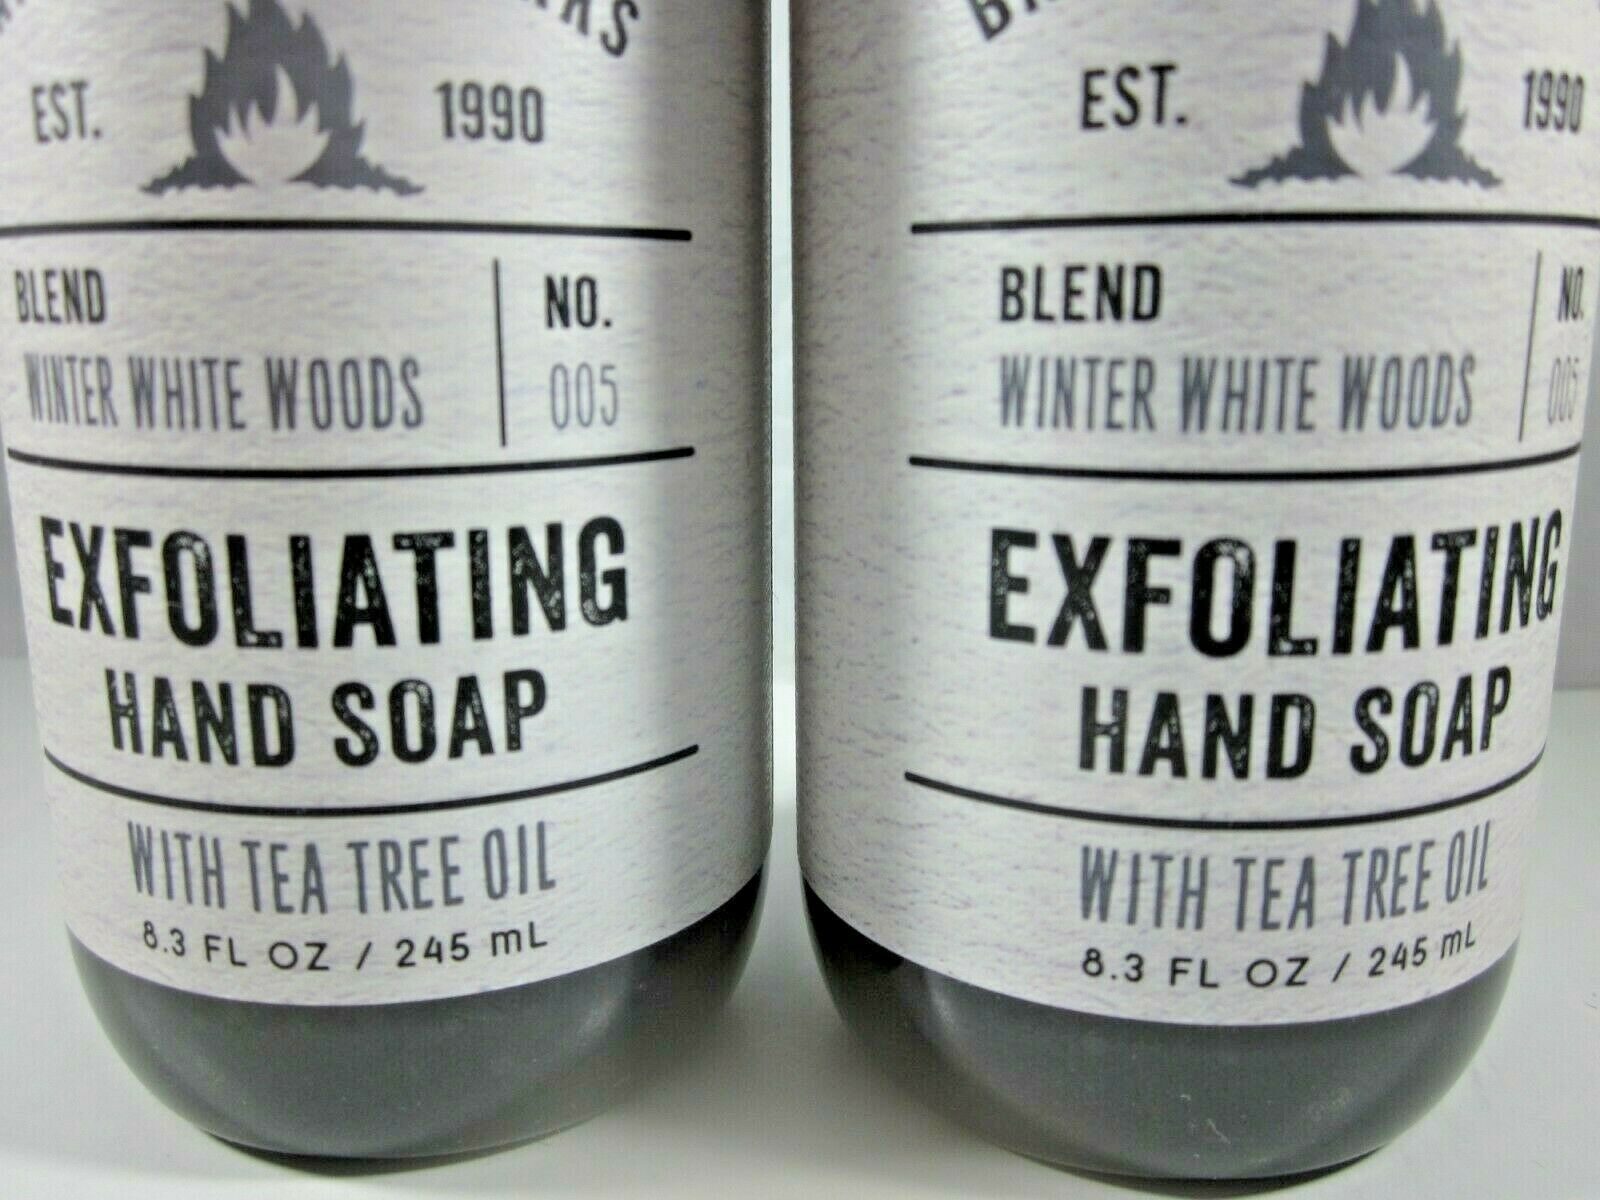 2 Bath & Body Works Exfoliating Hand Soap tea tree oil  Winter White Woods image 3